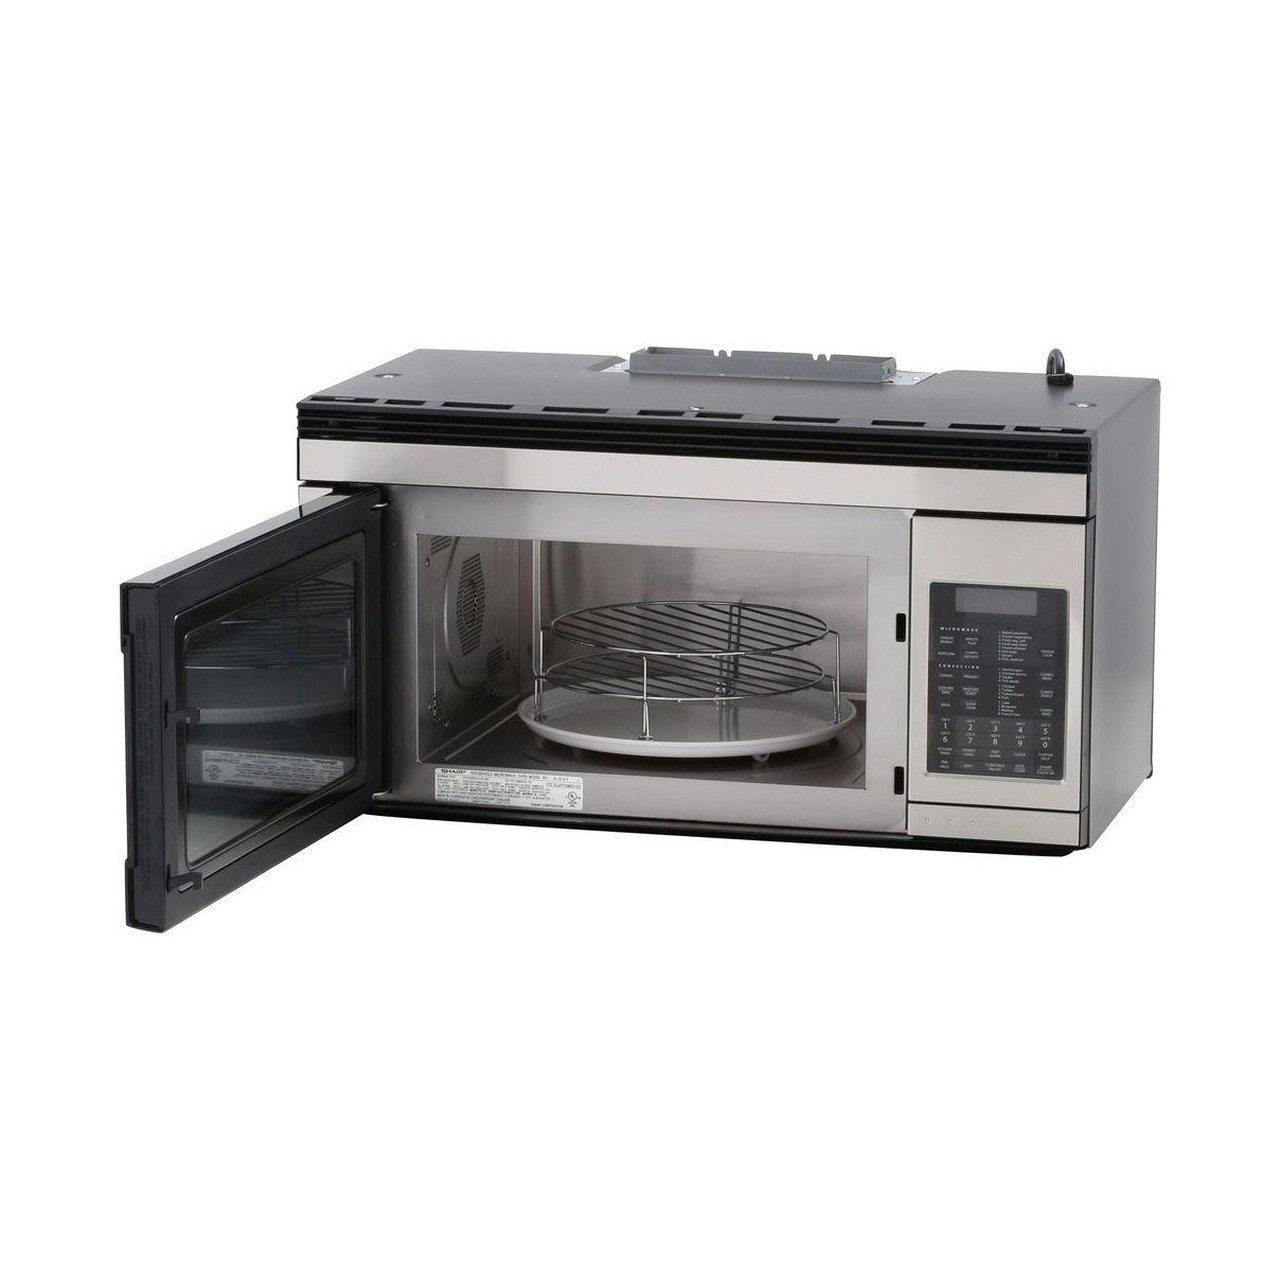 Range Convection Microwave Oven